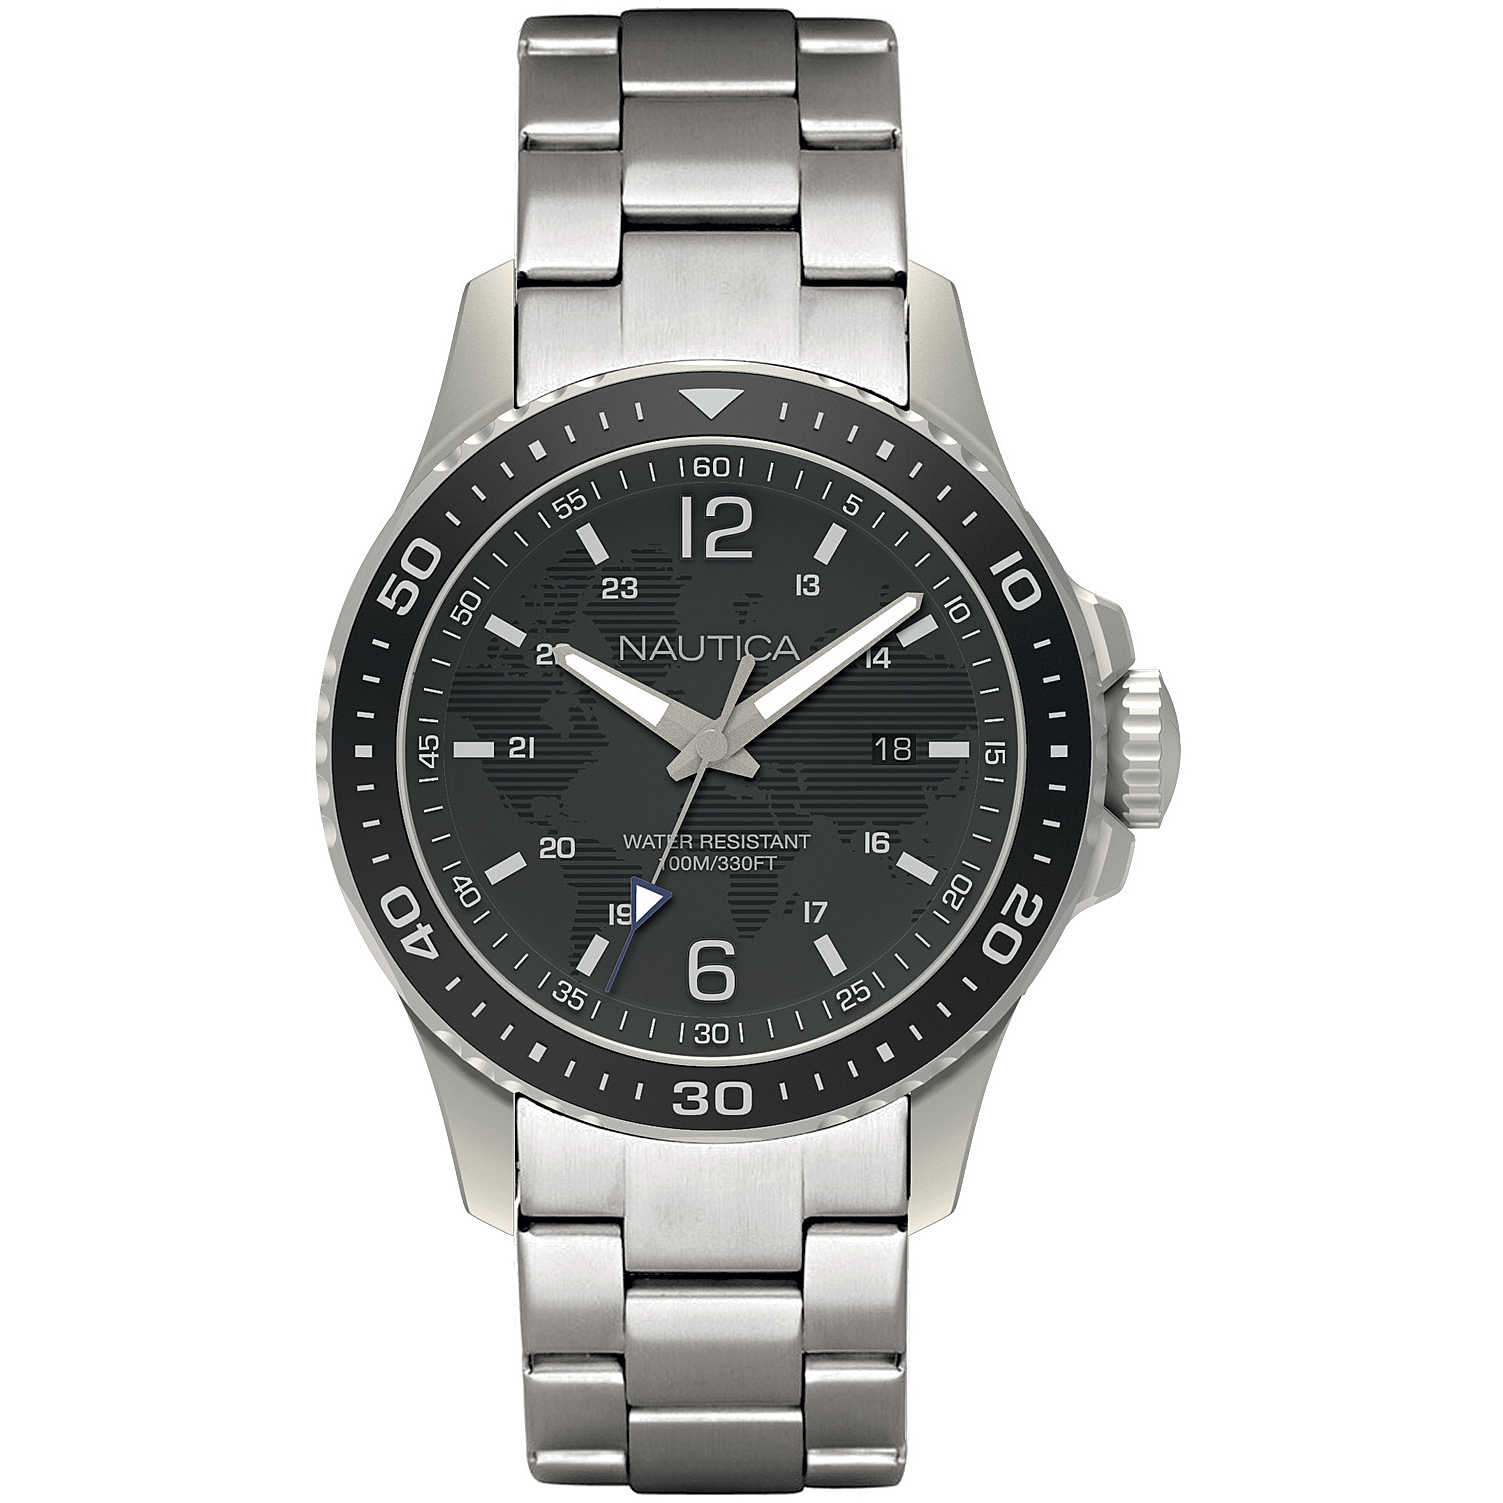 Nautica steel watch black dial 44 mm NAPFRB007